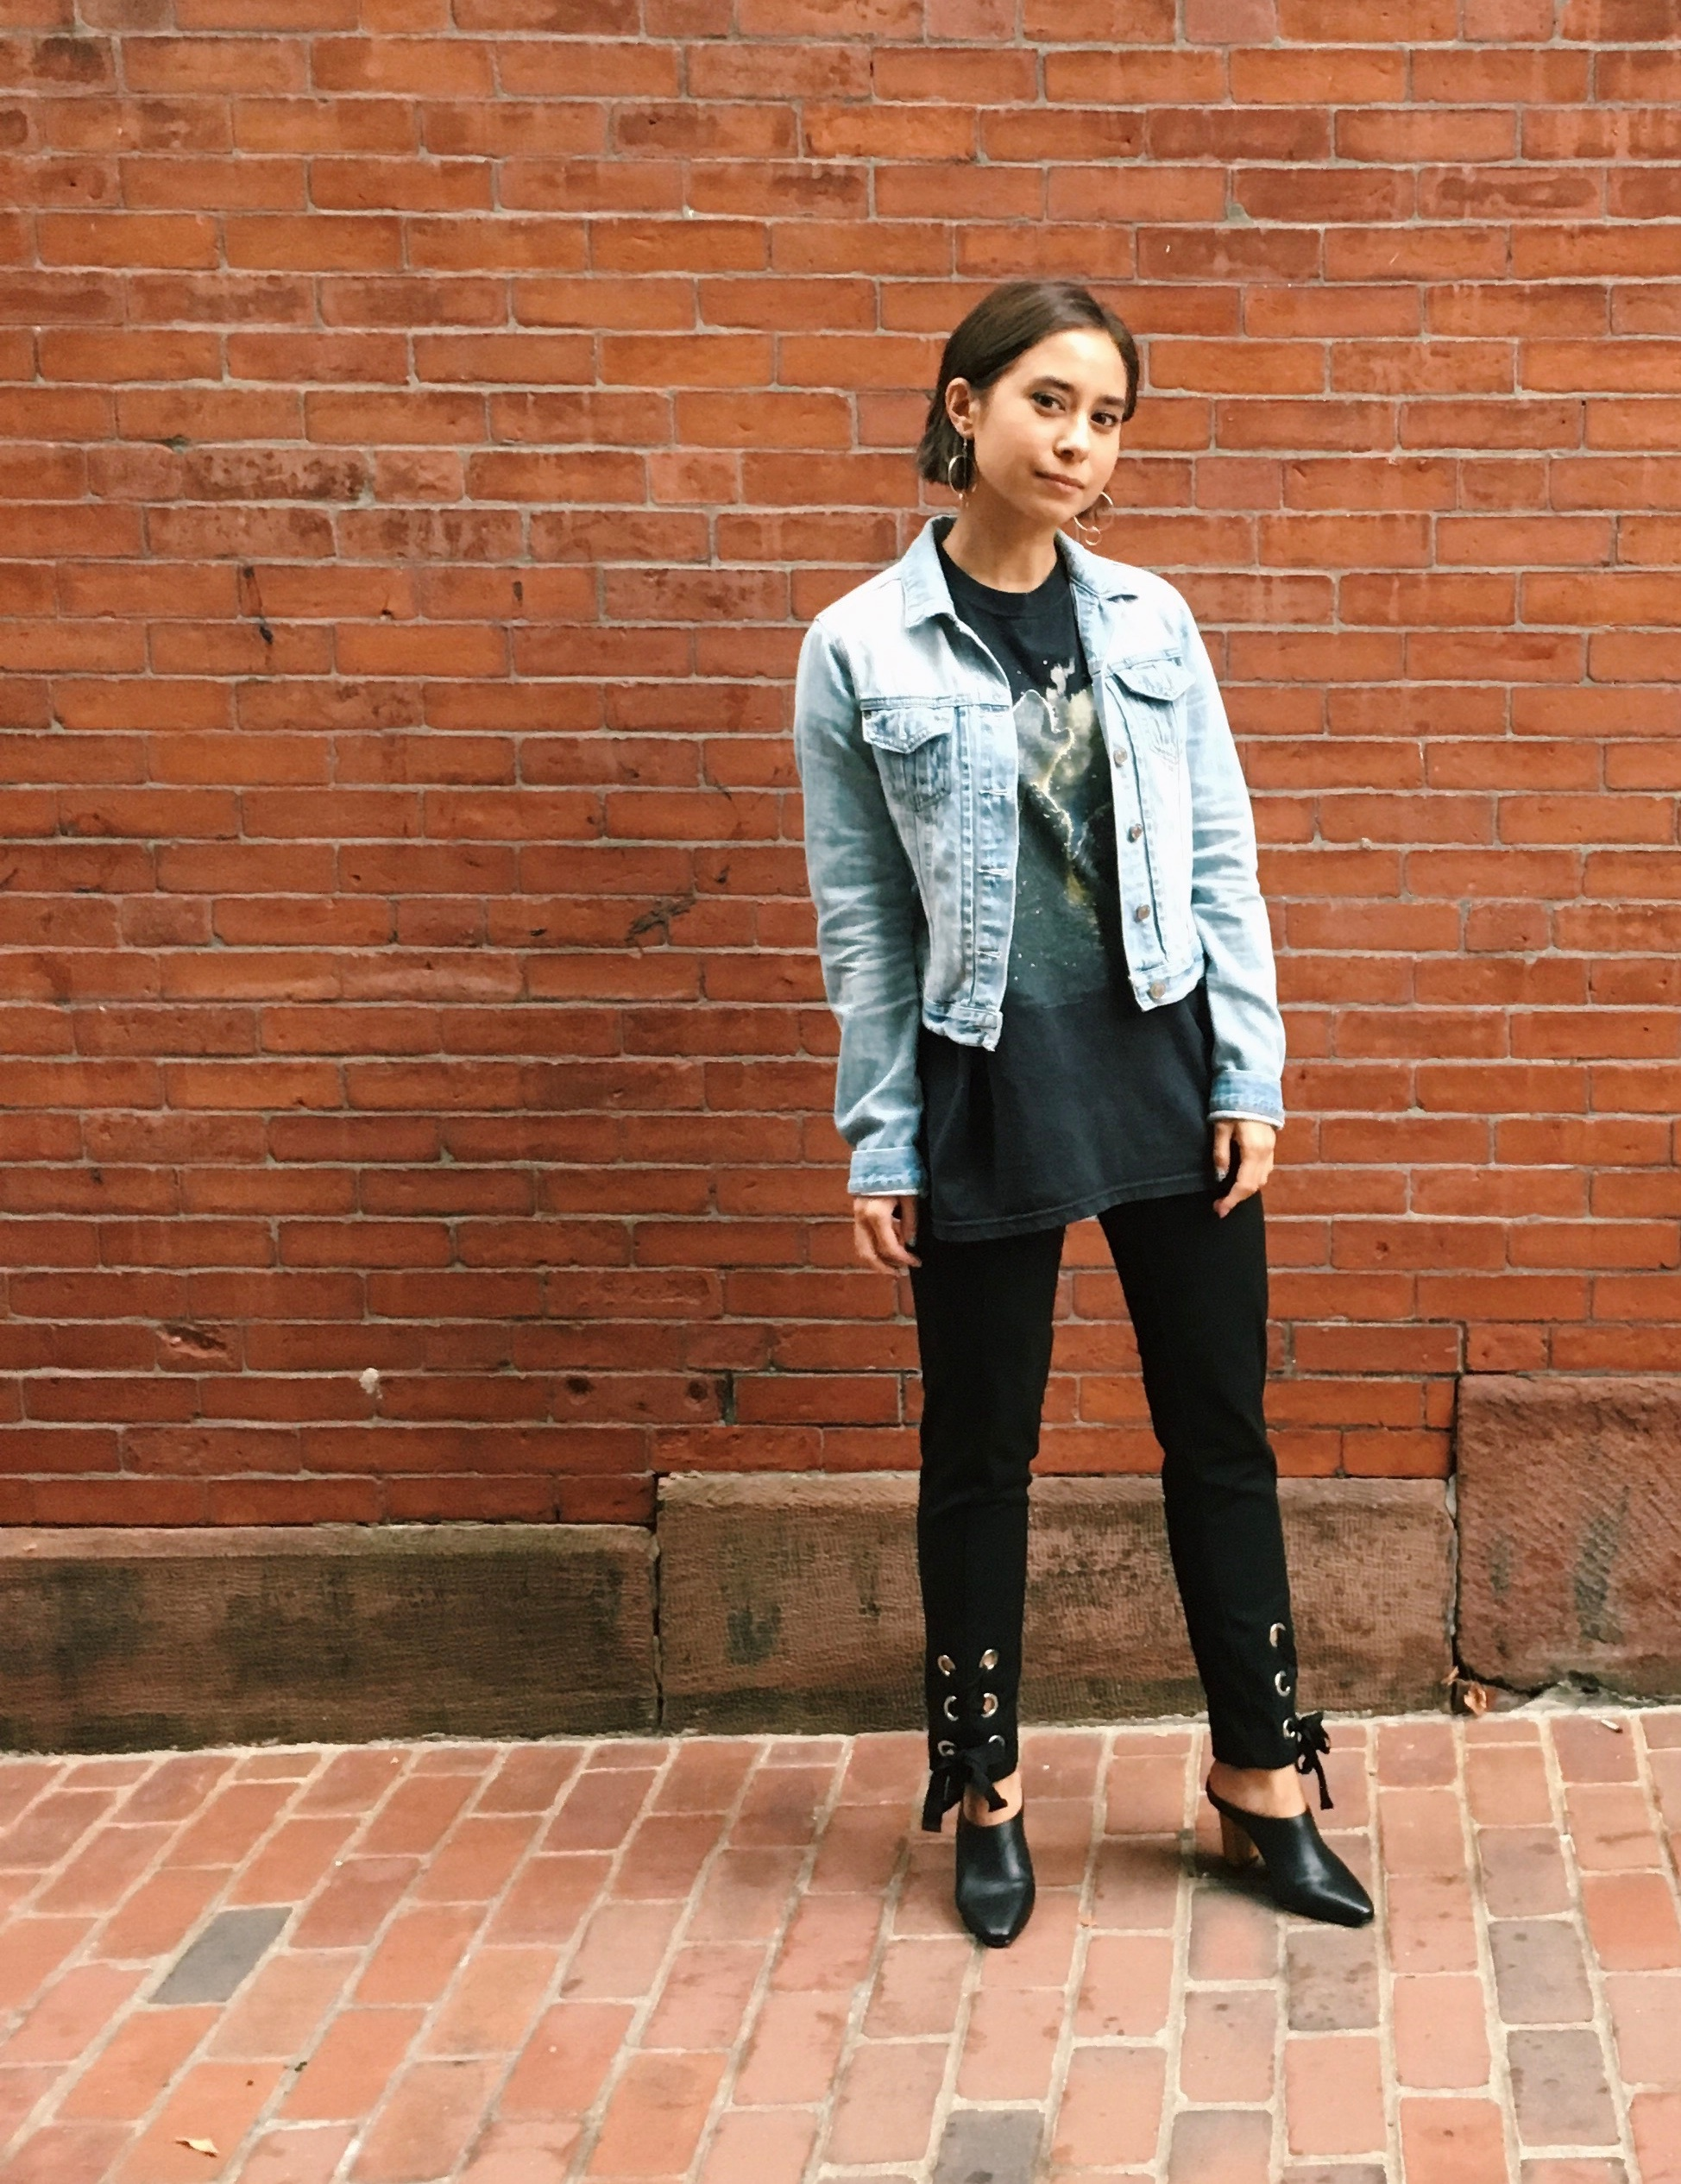 When fall fashion strikes: Vintage graphic Ts and lace-up pants